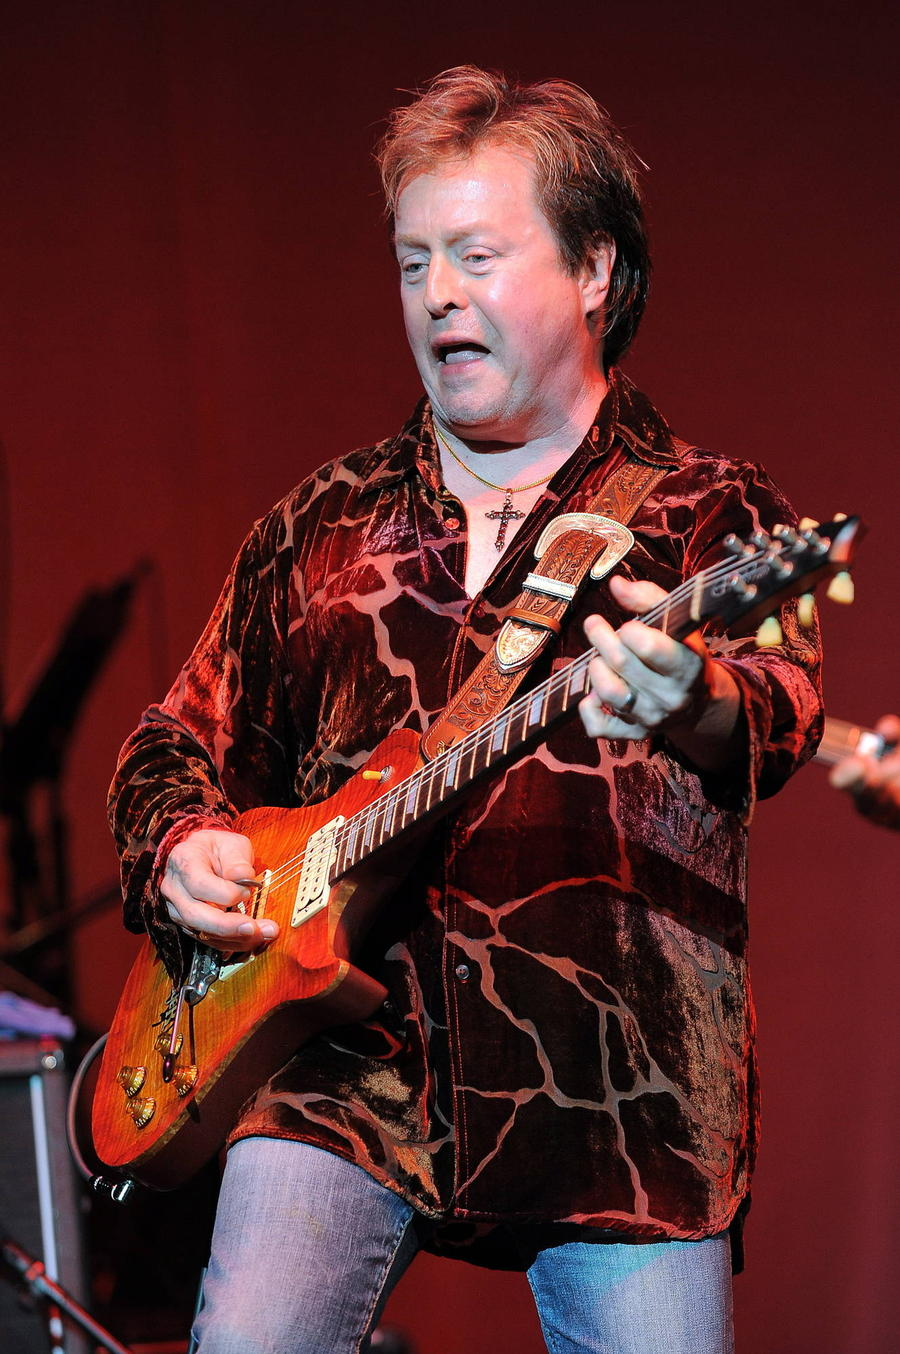 Rick Derringer Pleads Guilty To Carrying Loaded Gun On Flight